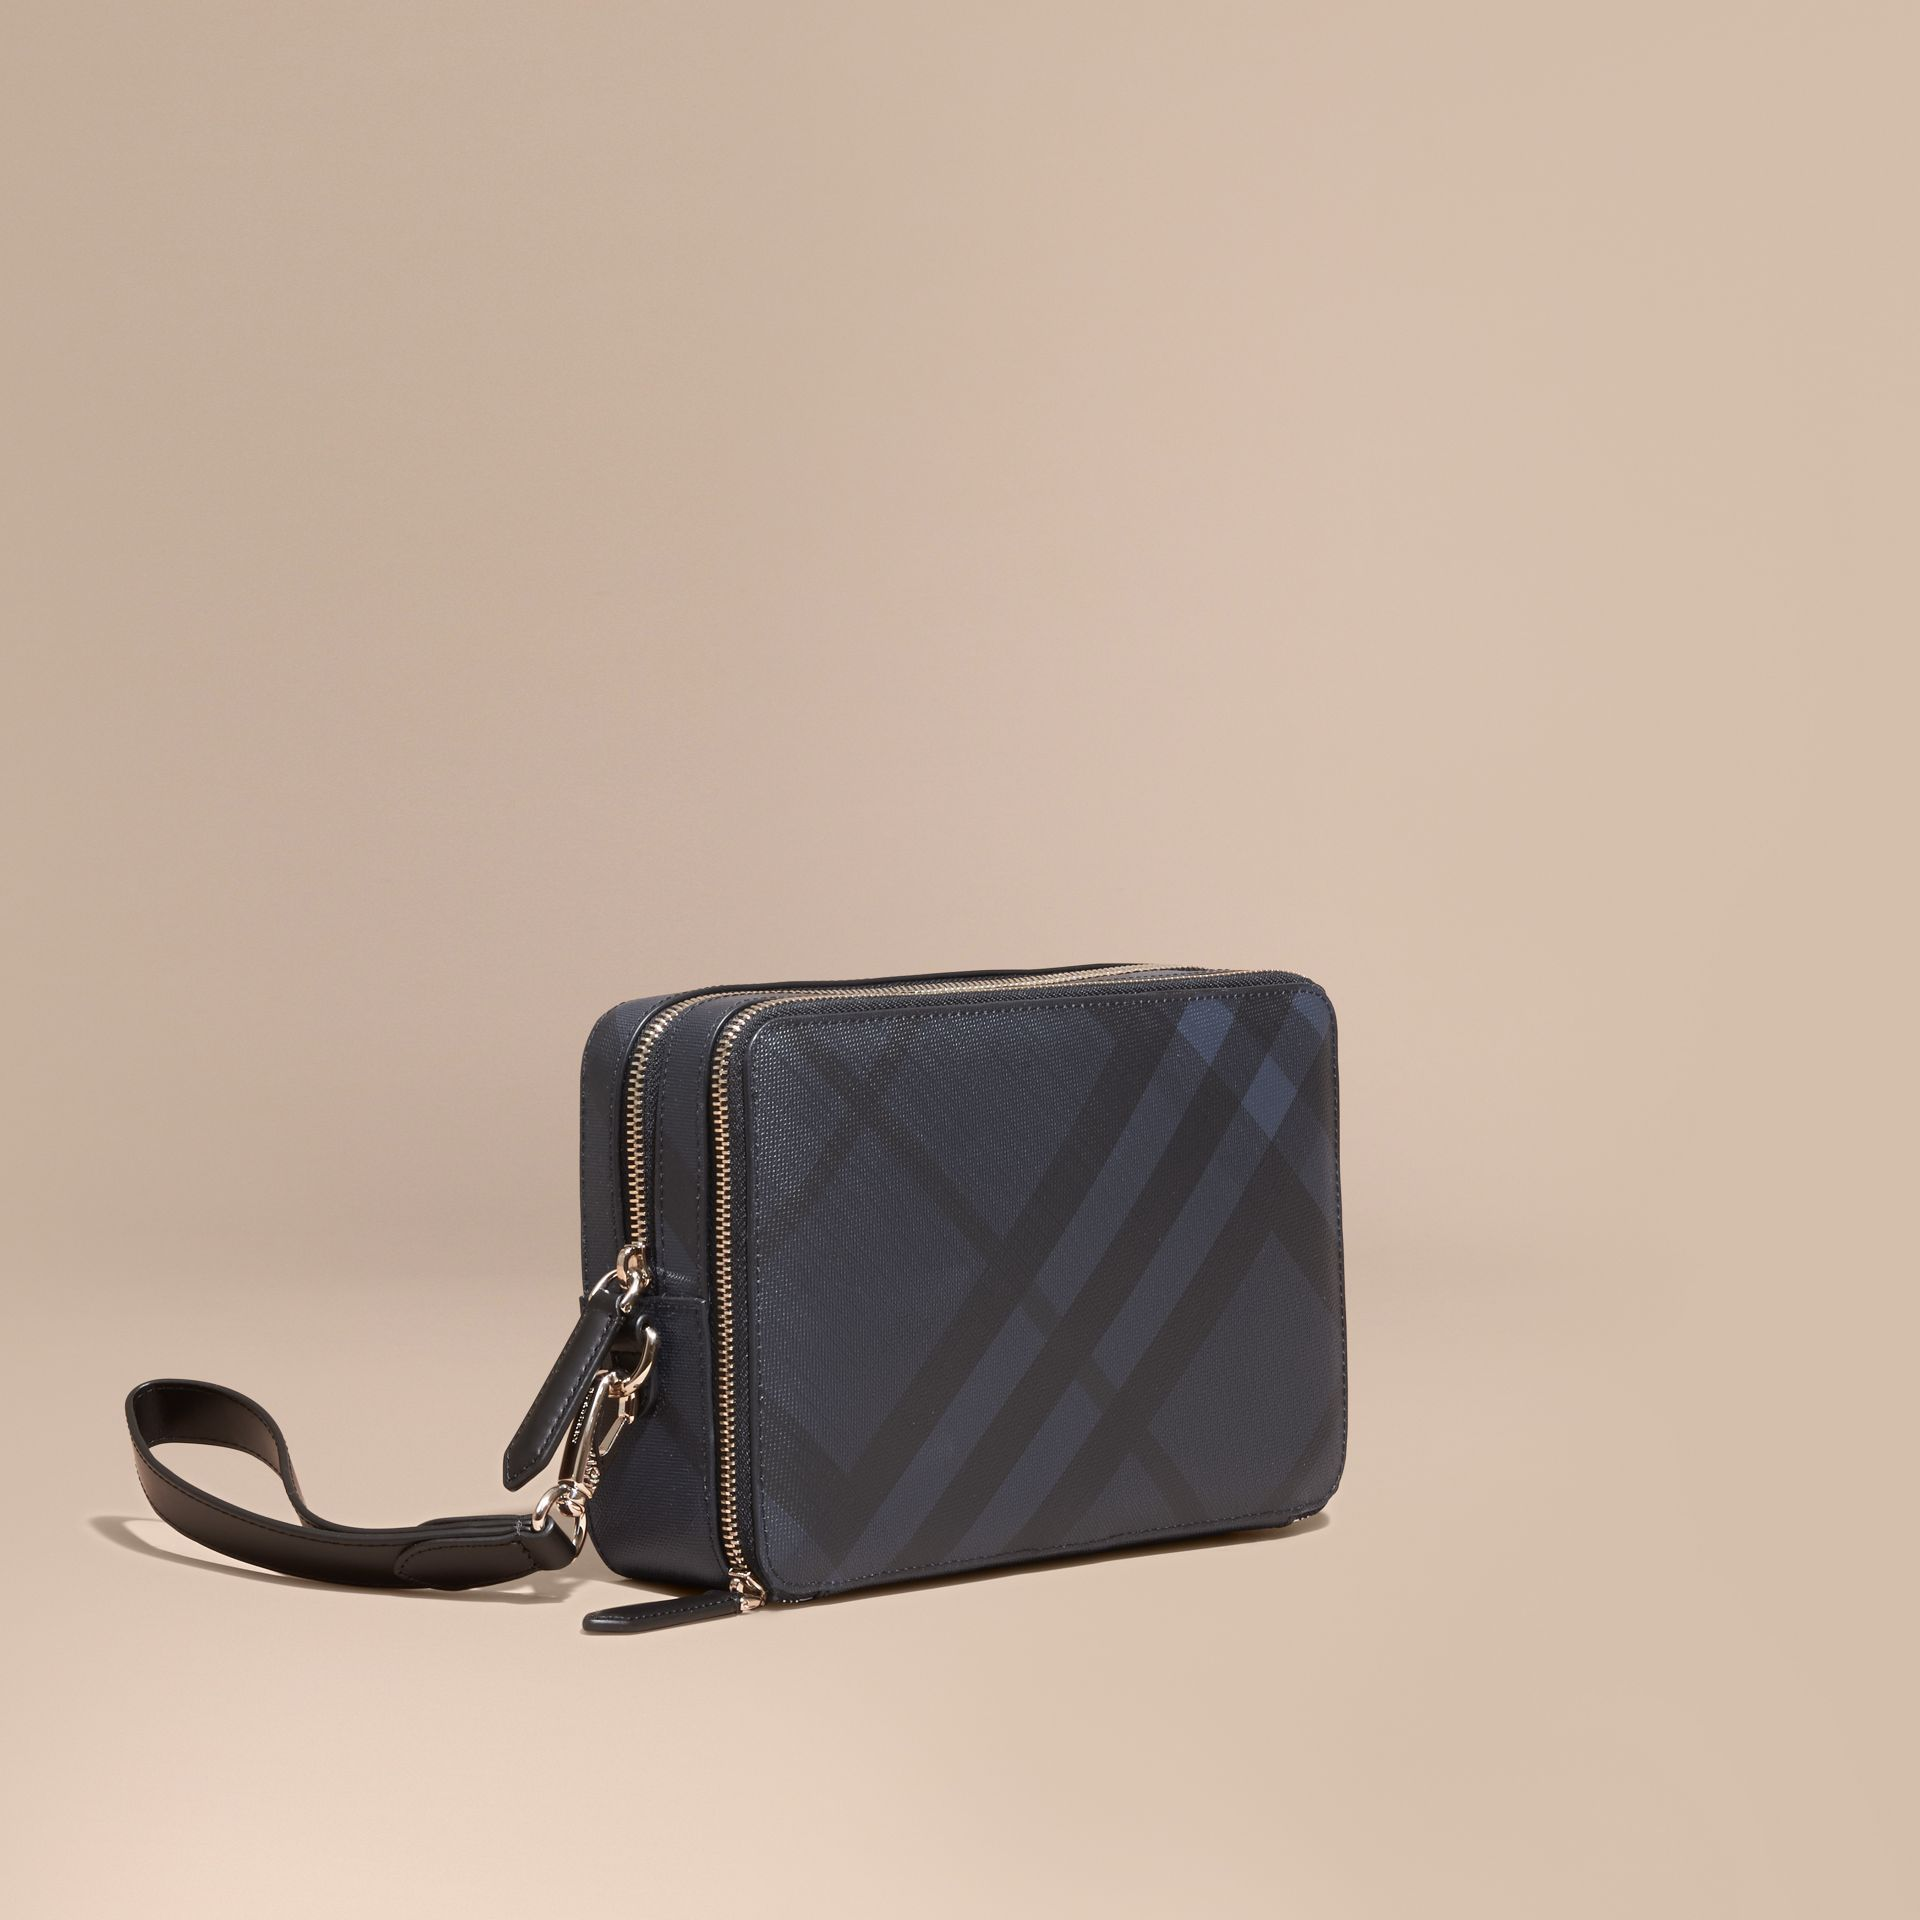 Leather-trimmed London Check Pouch in Navy/black - Men | Burberry Canada - gallery image 1